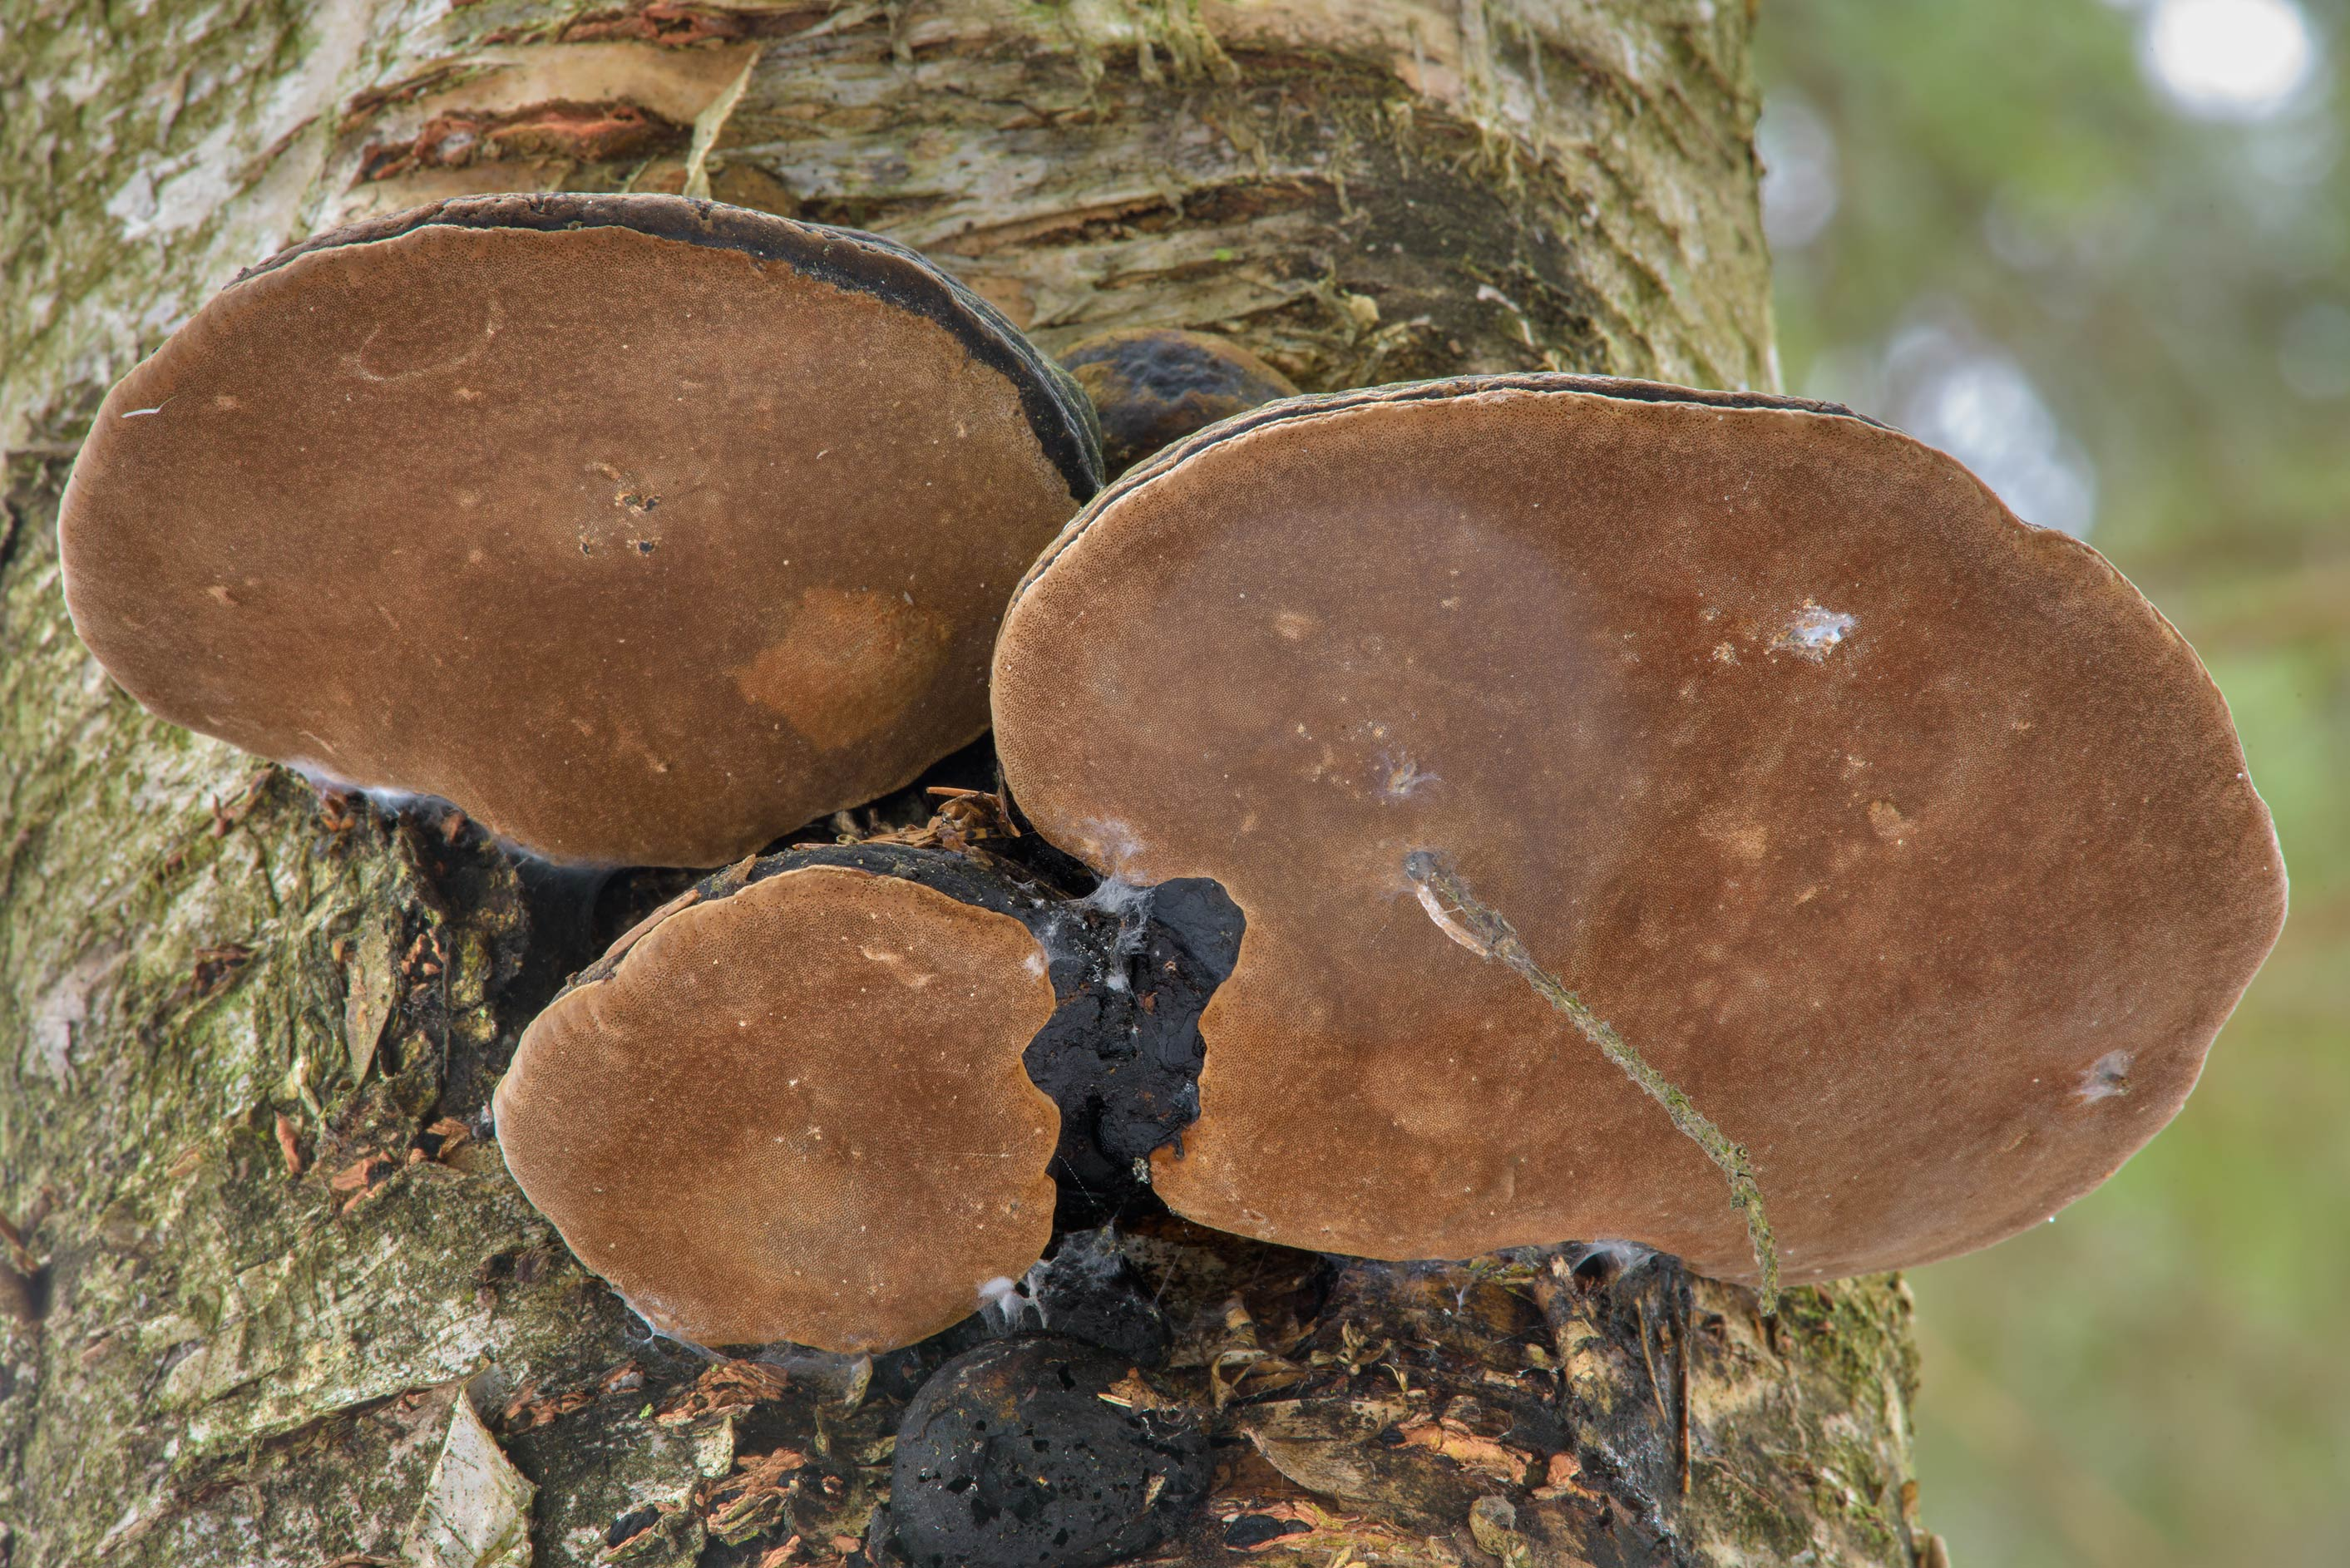 False conk mushrooms (Phellinus igniarius) in...Pesochny near St.Petersburg. Russia